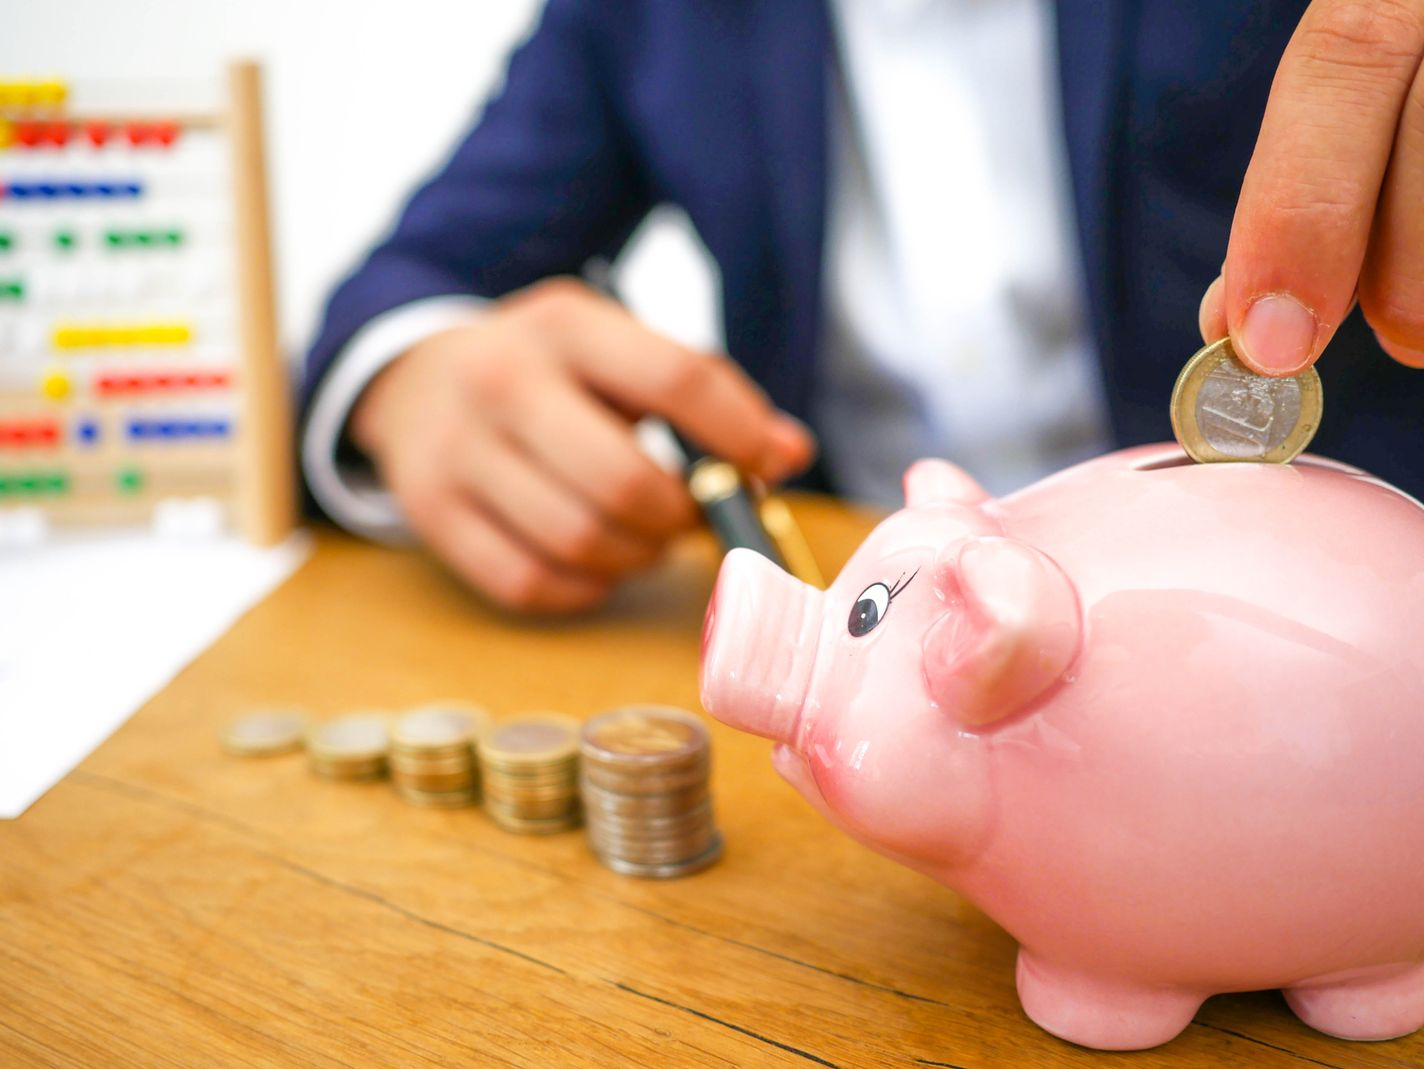 Coins being inserted in a pink piggy bank, indicating that among the benefits of having an emergency fund is that it helps develop good financial habits